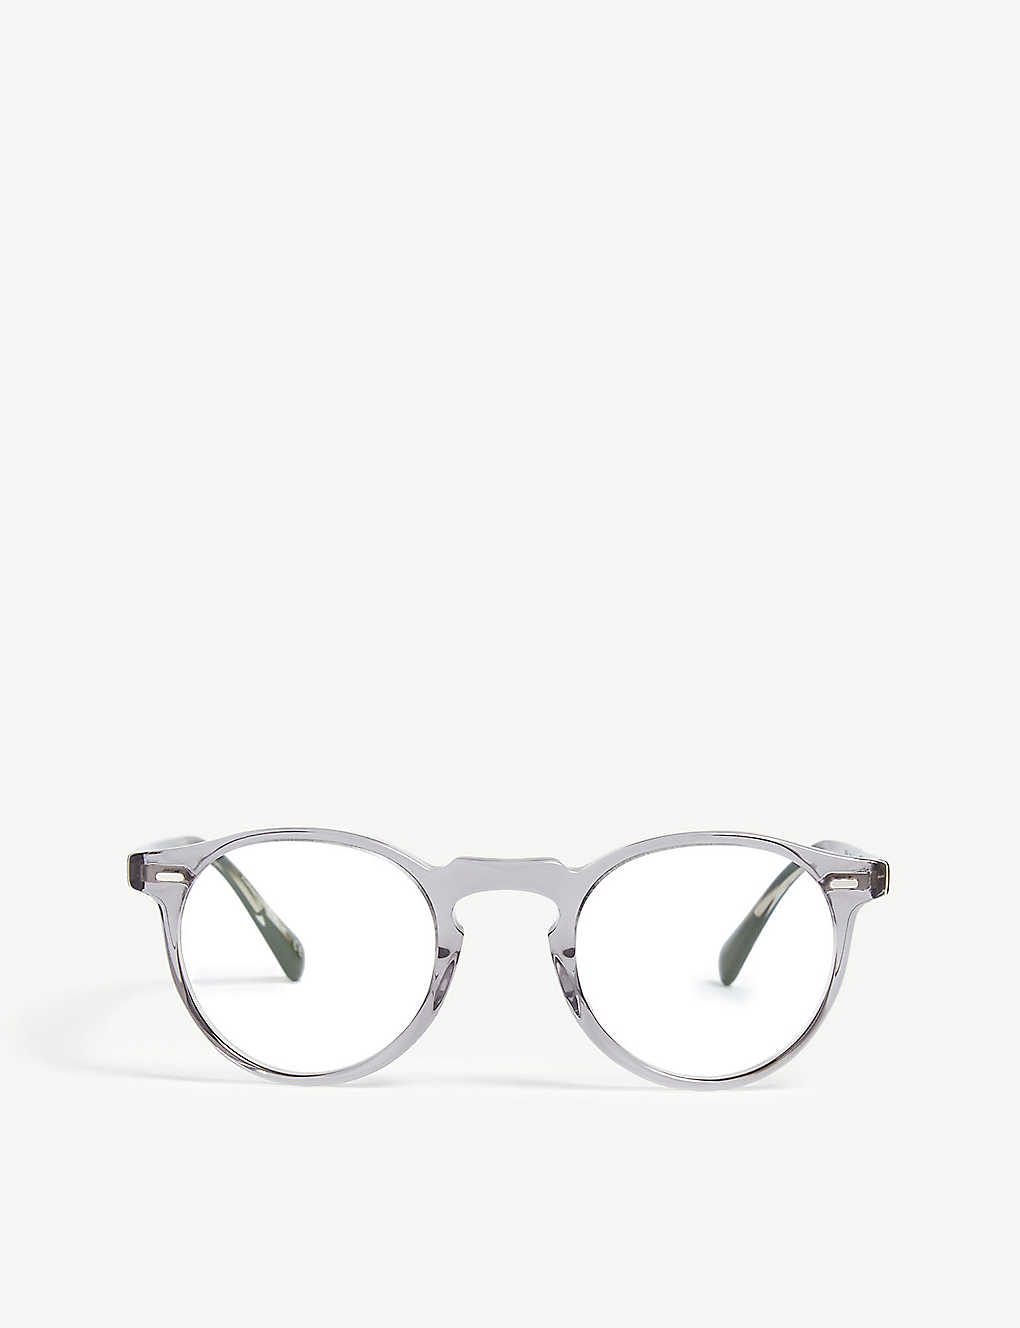 016152f11a90 OLIVER PEOPLES - Gregory Peck round-frame optical glasses ...